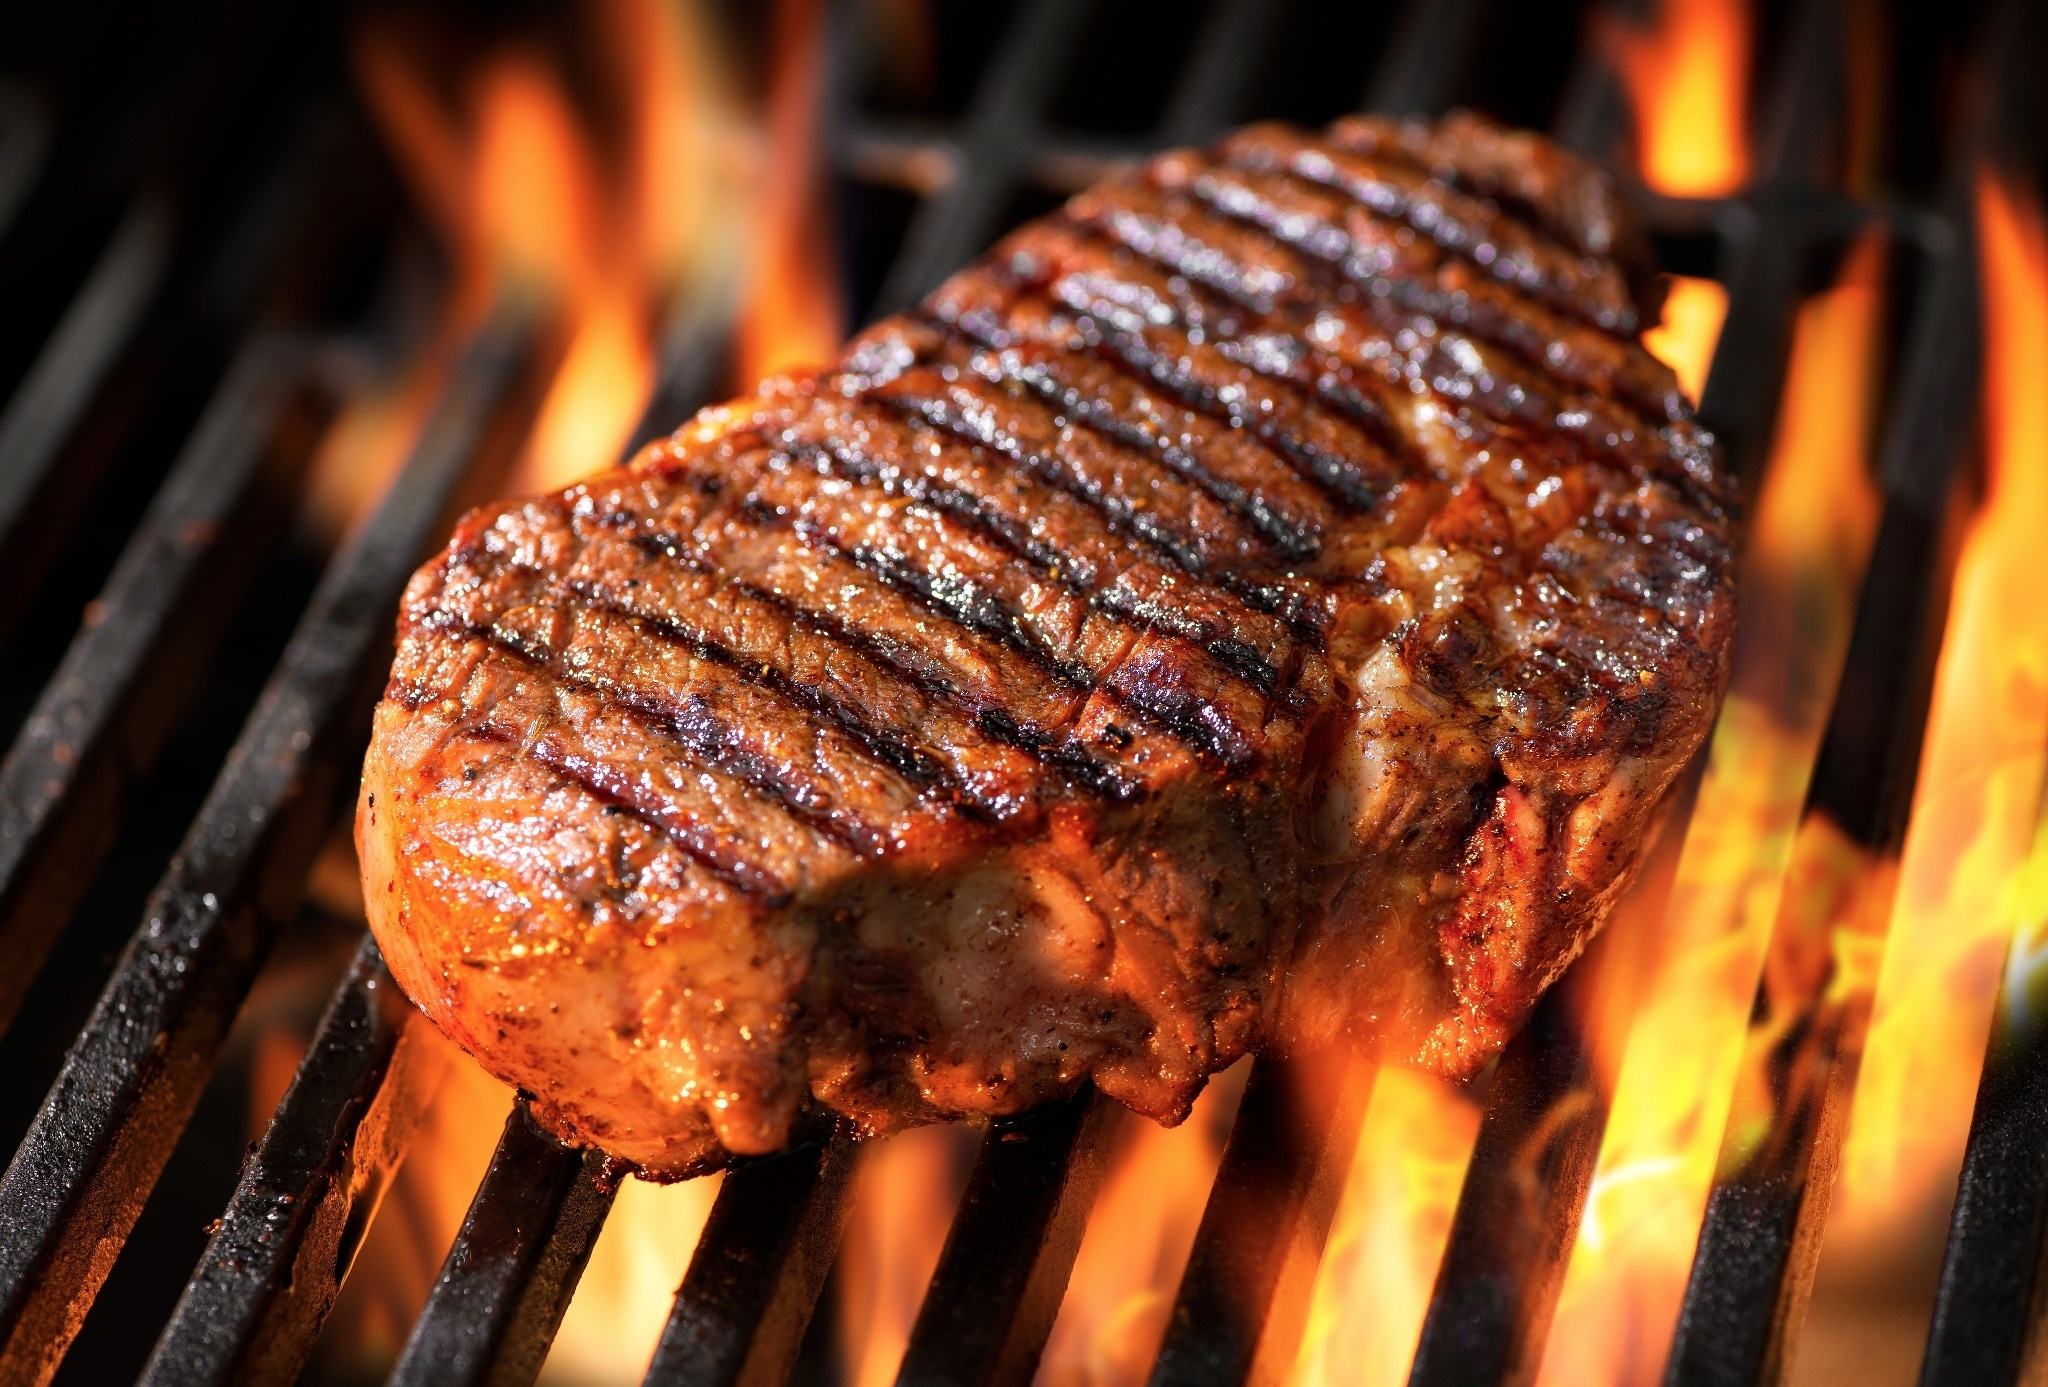 Which Online Steak Site Offers the Best Value and Deals?